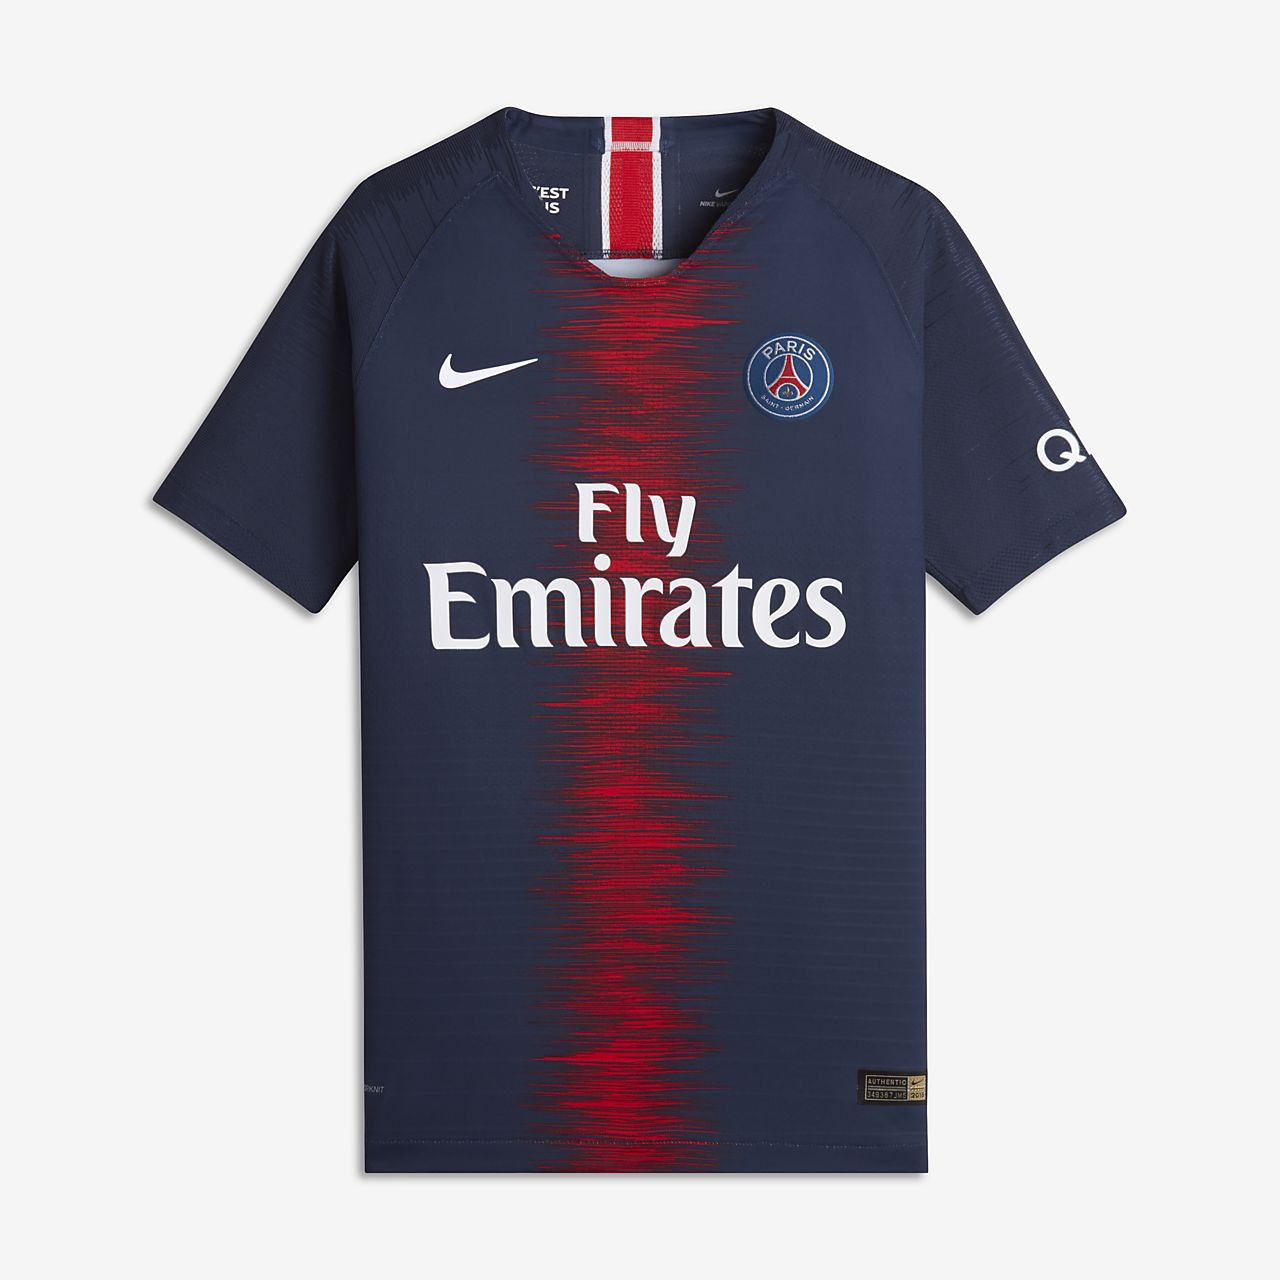 2018/19 Paris Saint-Germain Vapor Match Home Older Kids' Football Shirt